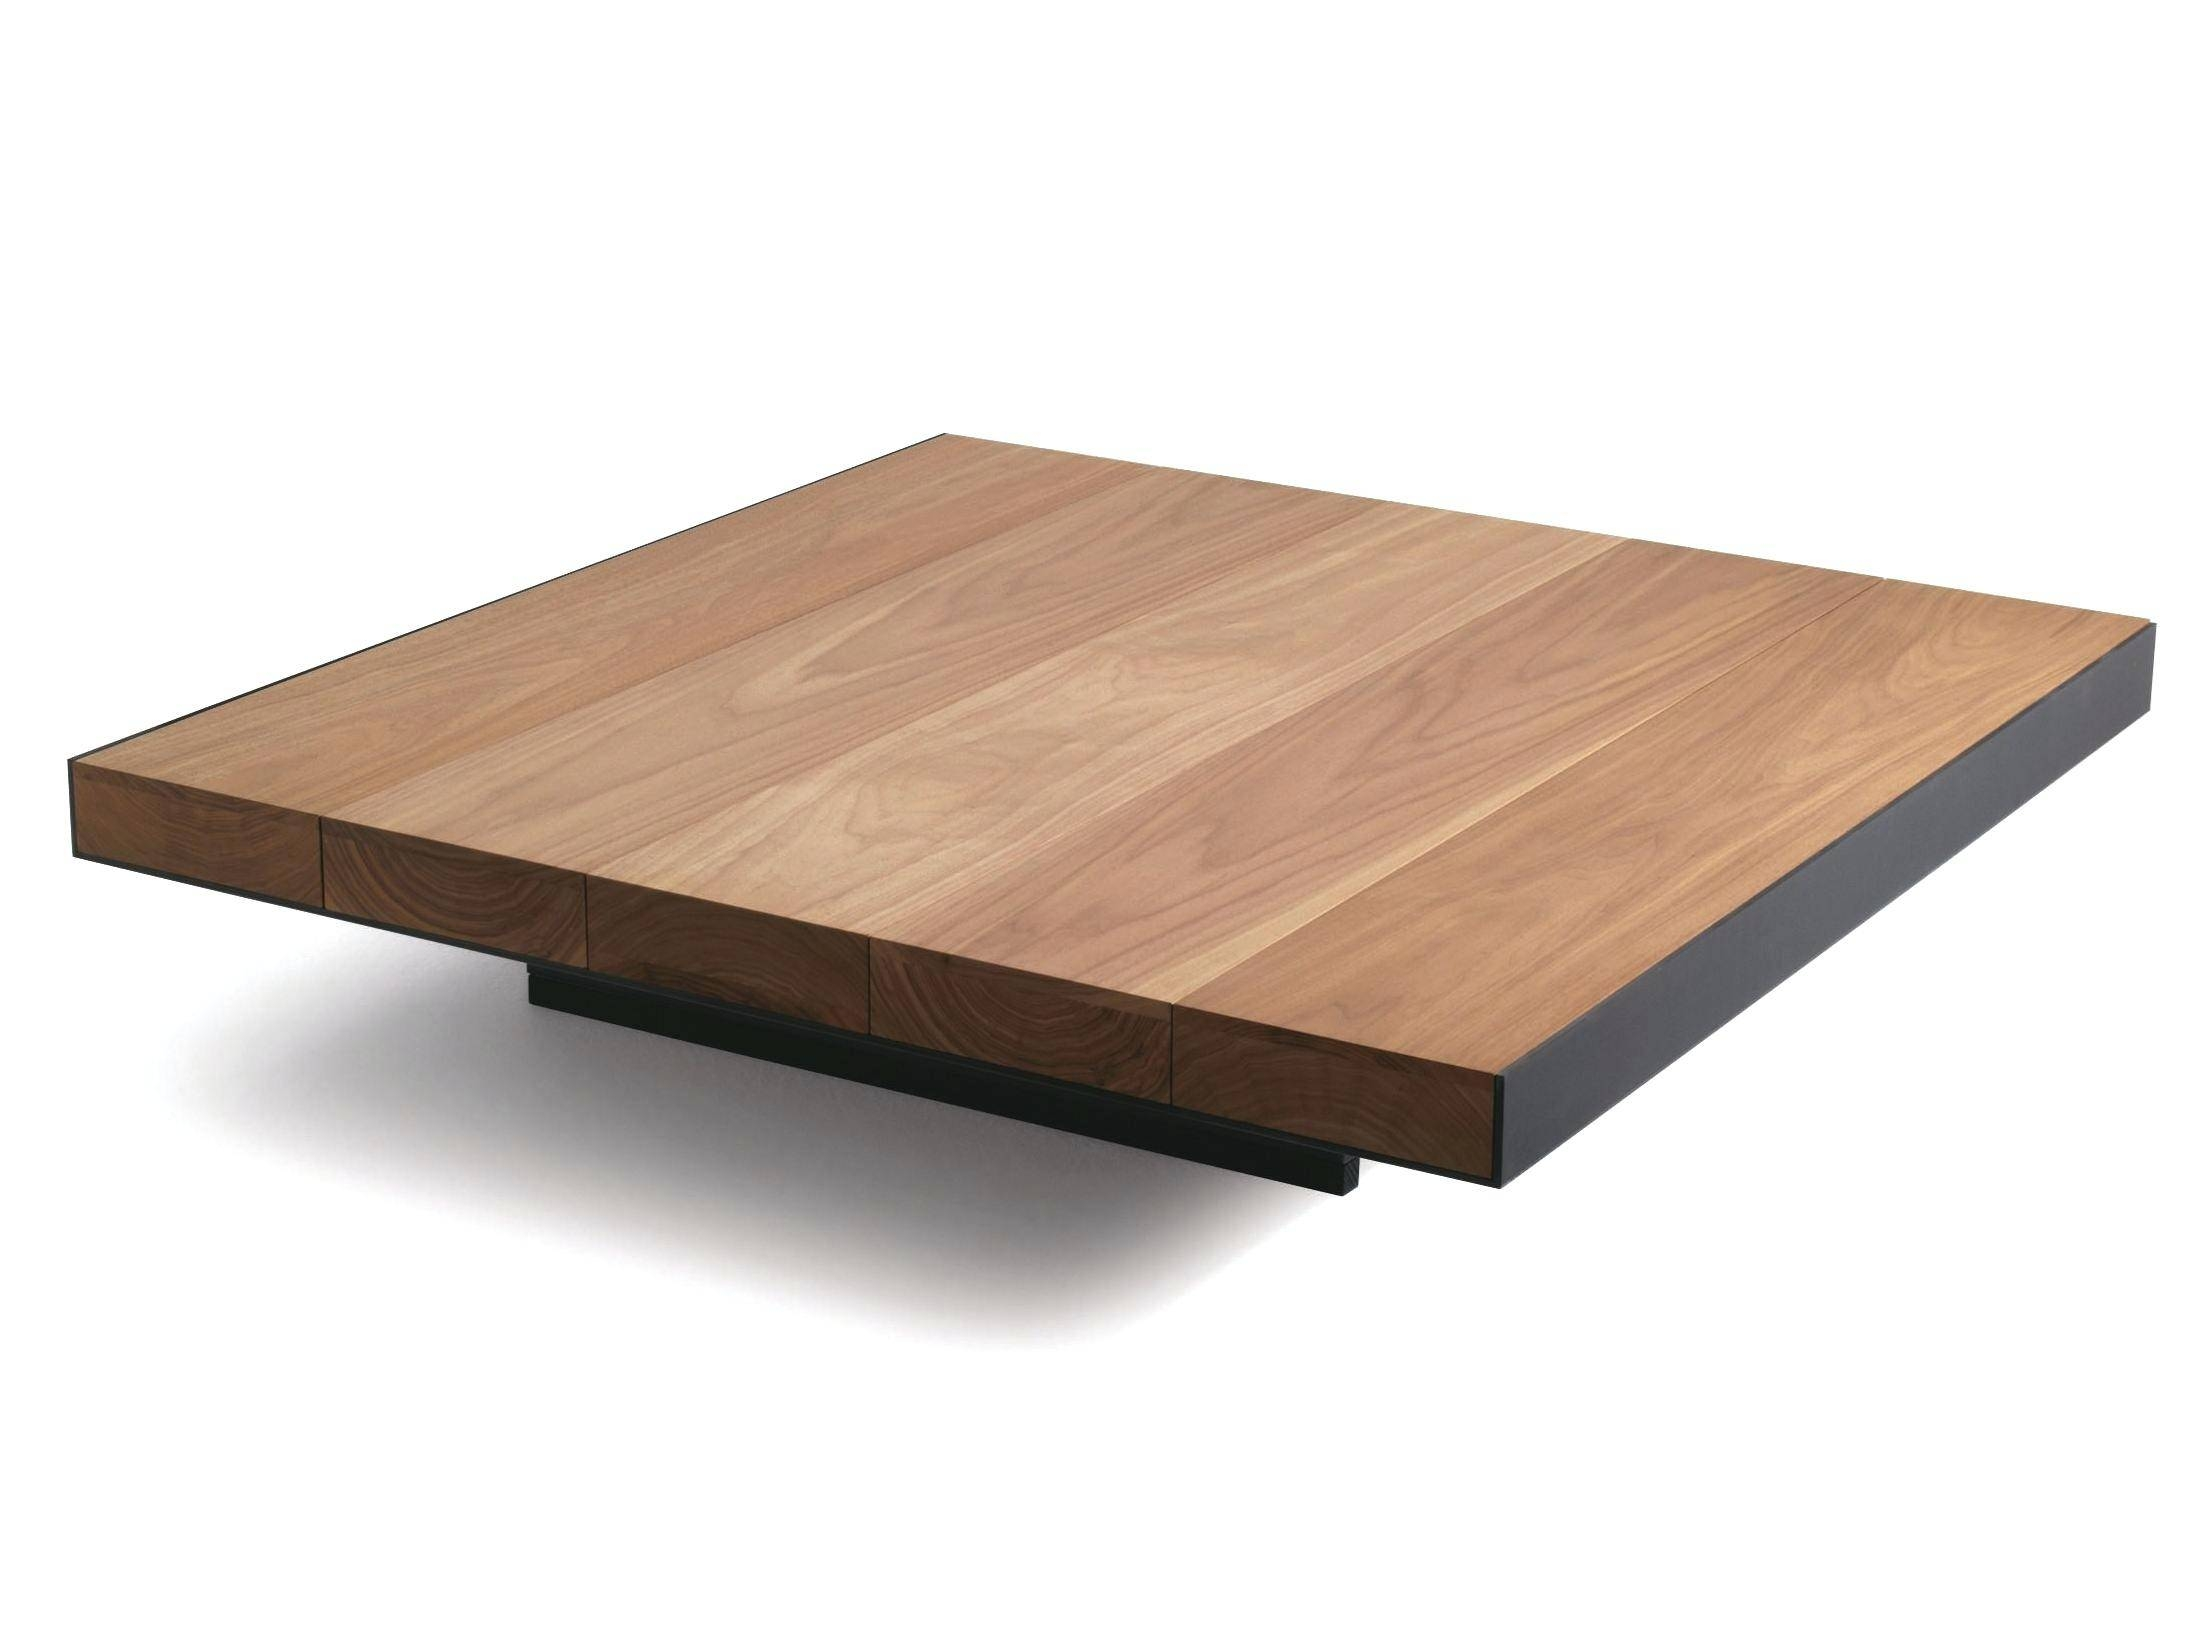 Coffee Table ~ Low Coffee Tables Square Orp J11 S The Modena With Regard To Large Low Coffee Tables (View 15 of 15)